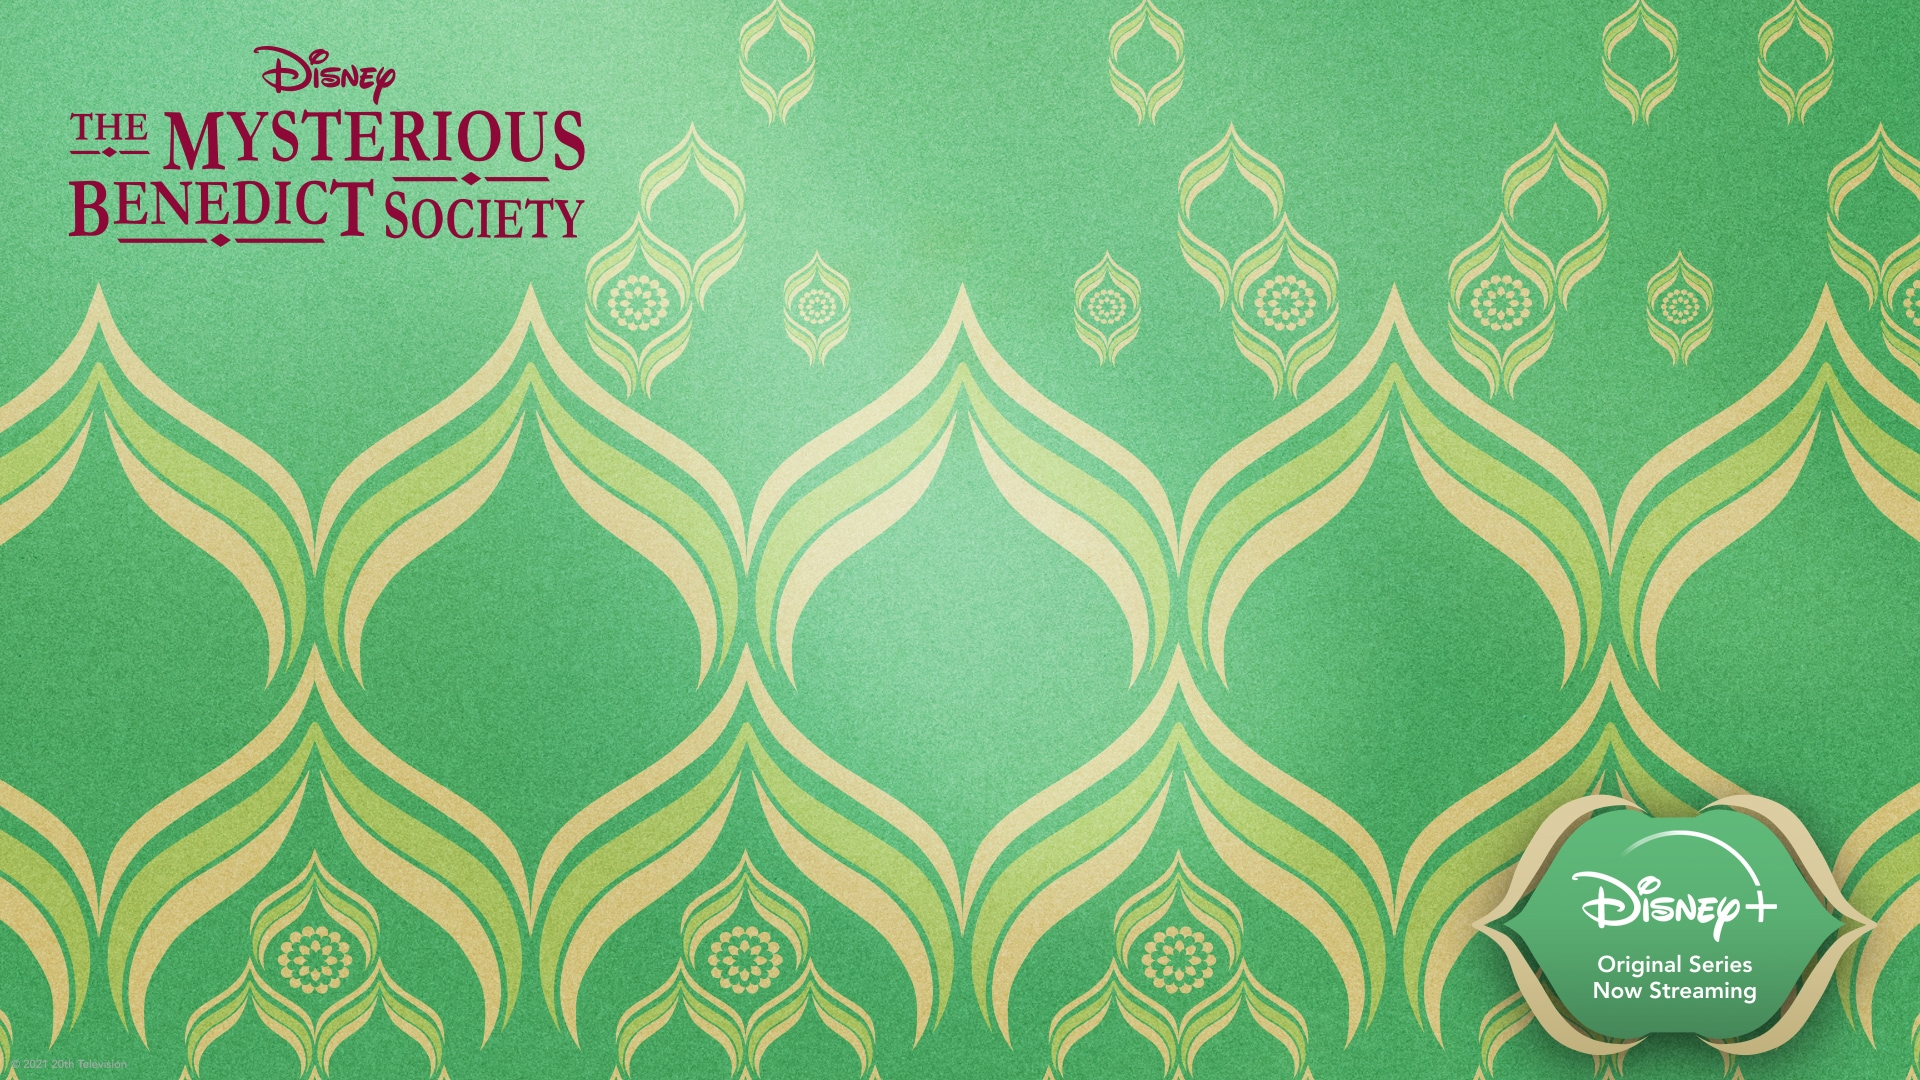 Style Up Your Next Video Call With The Mysterious Benedict Society Backgrounds